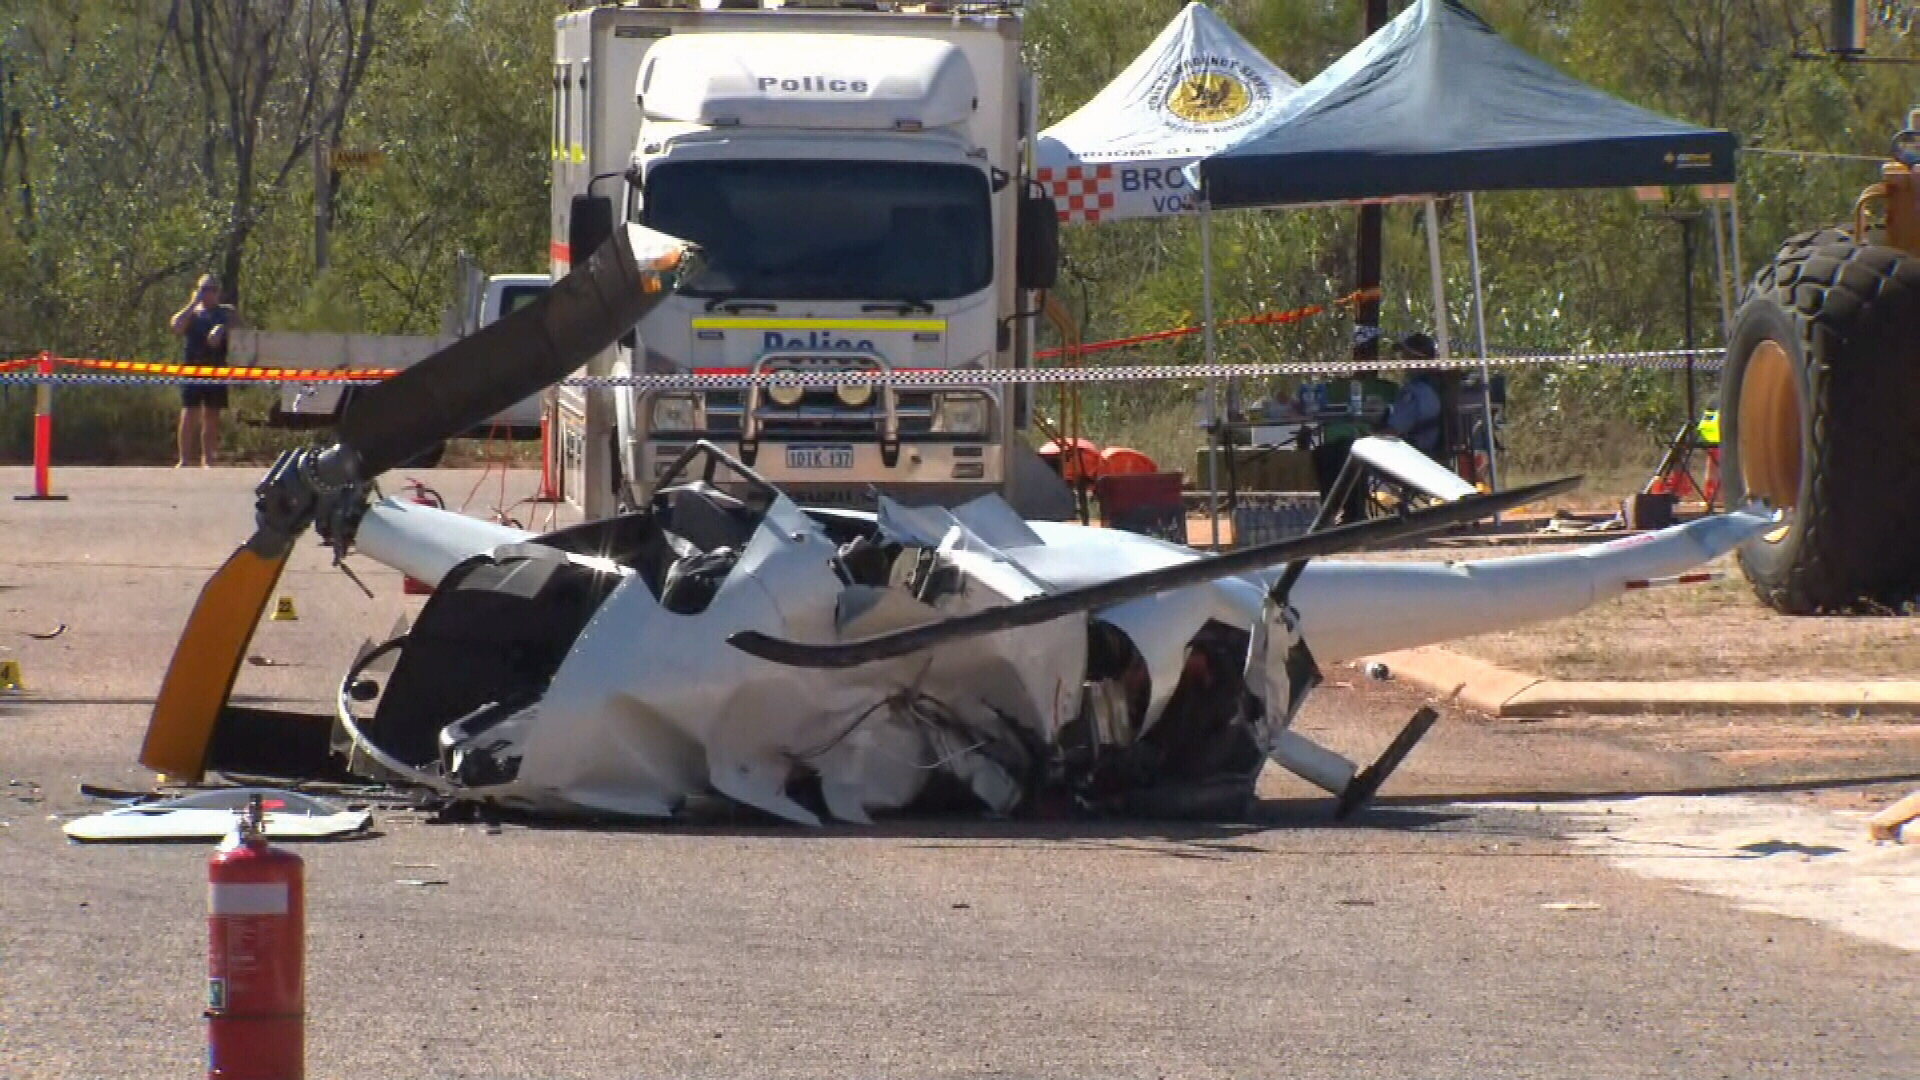 Pilot and young girl killed in Broome helicopter crash